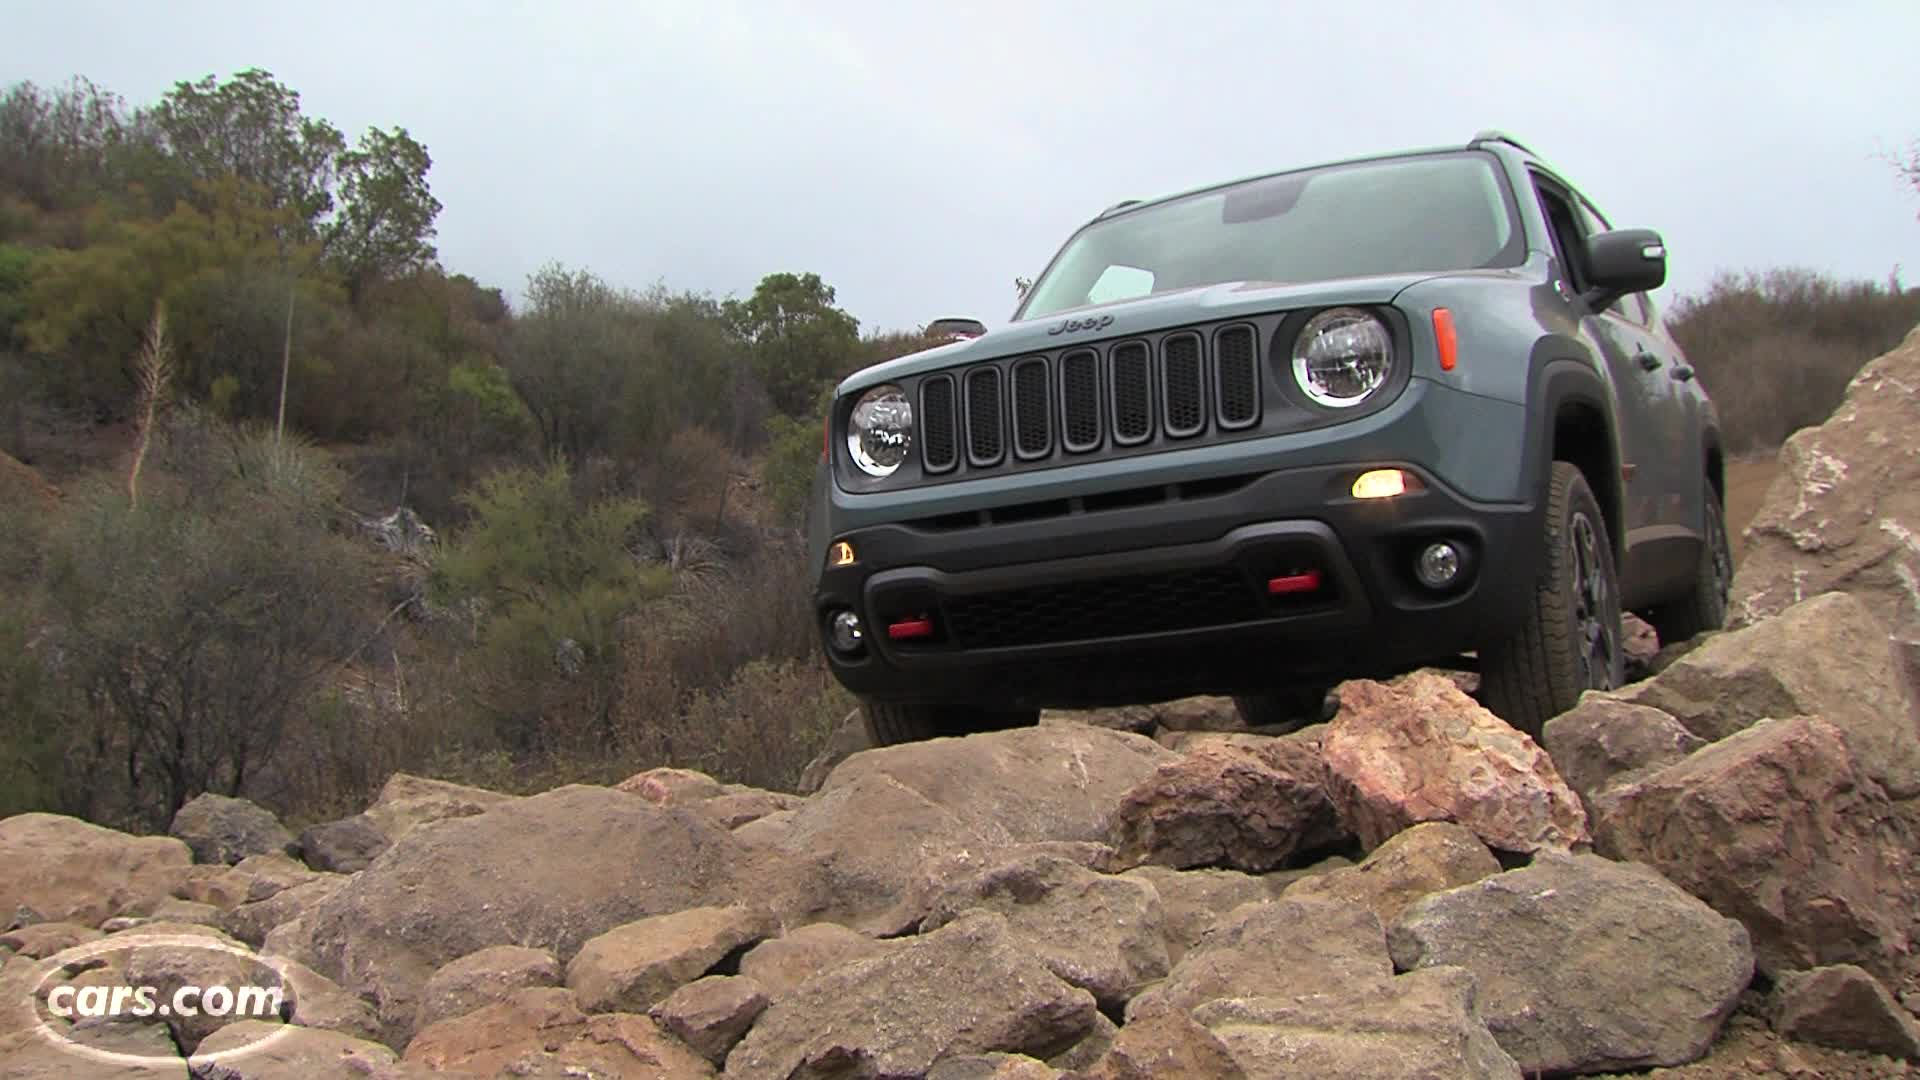 2015 Jeep Renegade Expert Reviews Specs And Photos Mopar Off Road Fog Driving Lights Wiring Kit Compass Patriot